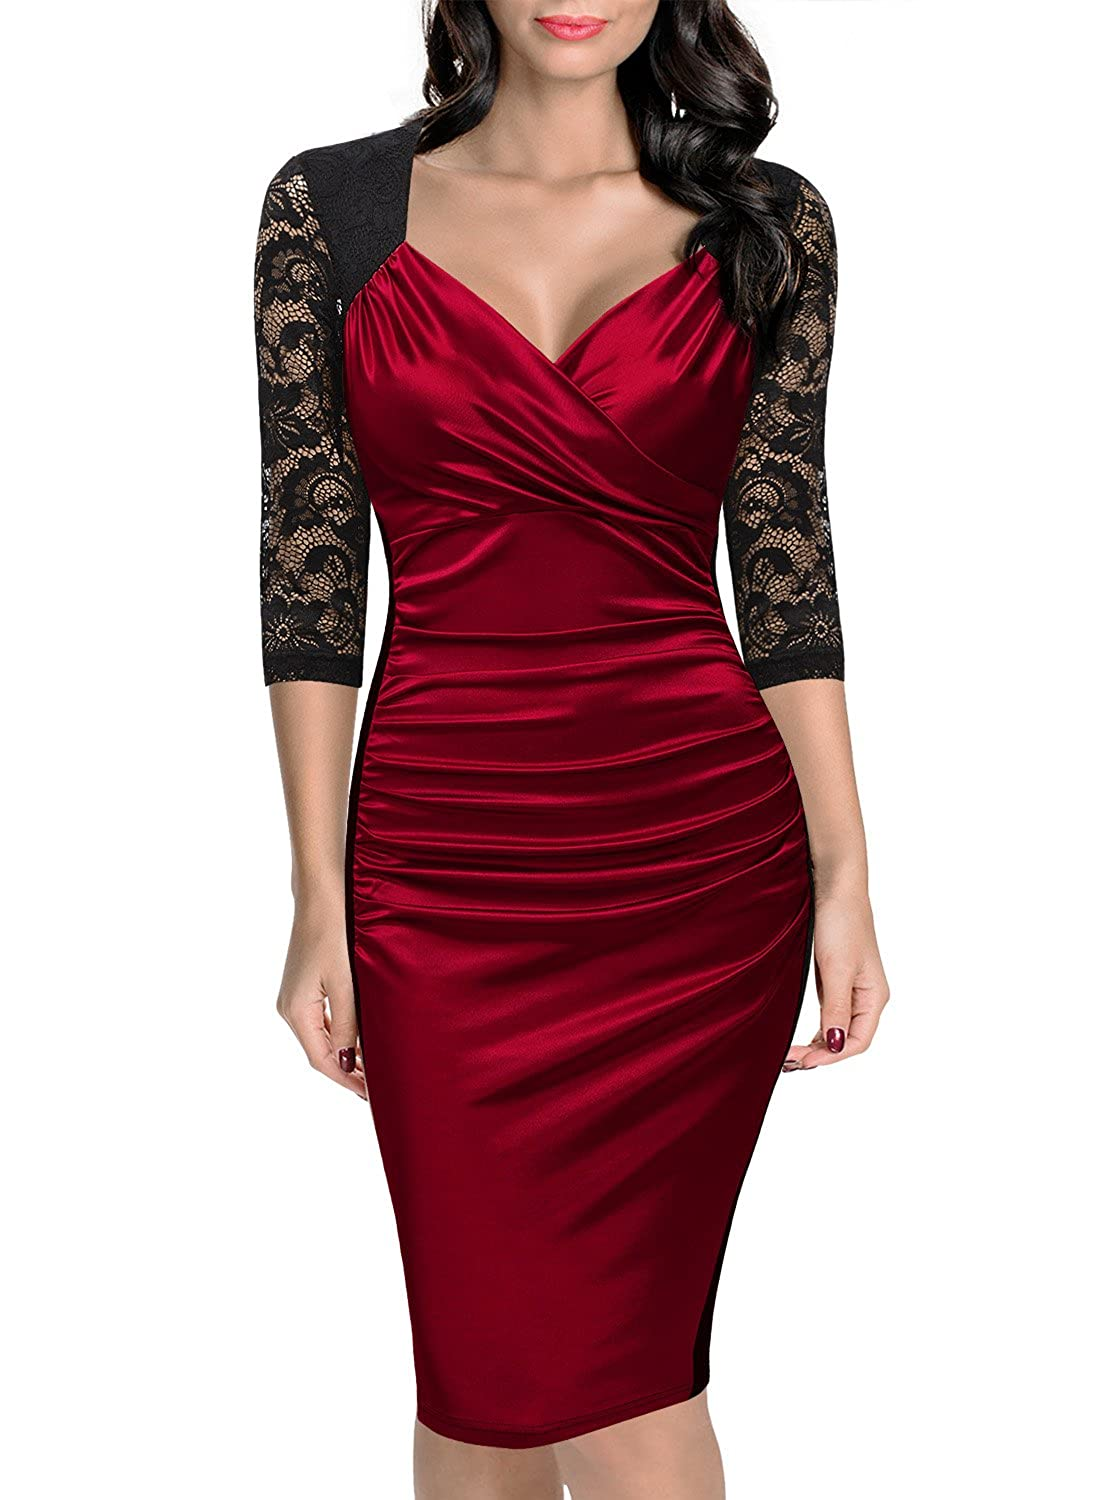 Miusol Women's Deep-V Neck Ruffles Floral Lace Fitted Retro Evening Pencil Dress QF3329